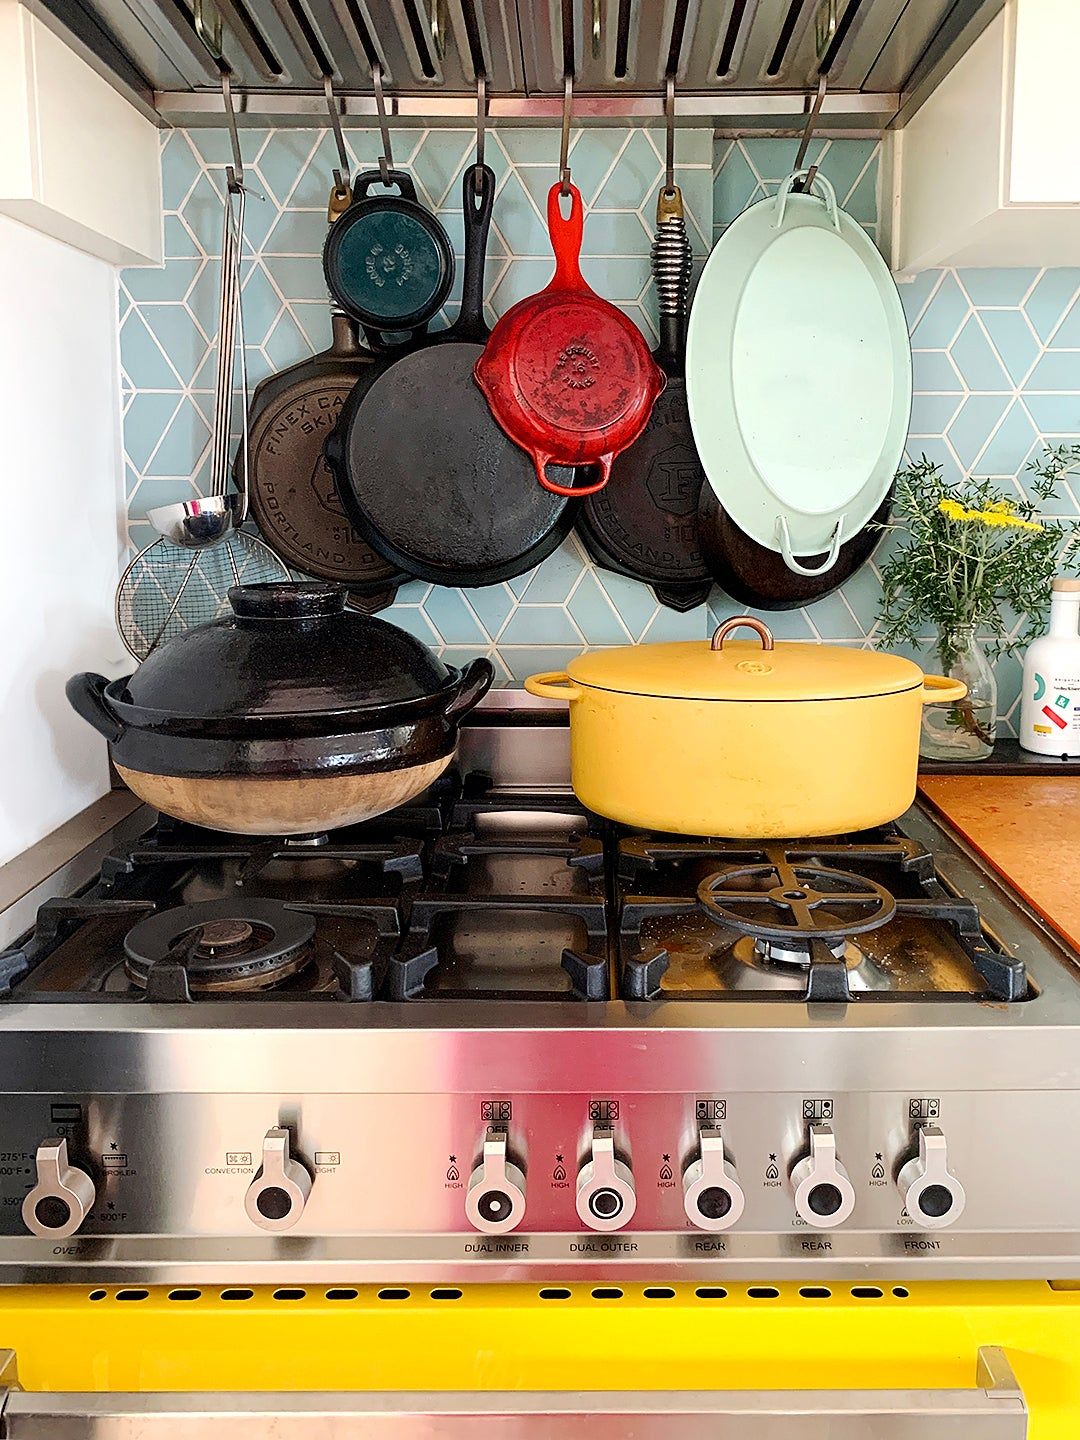 pots hanging from hood